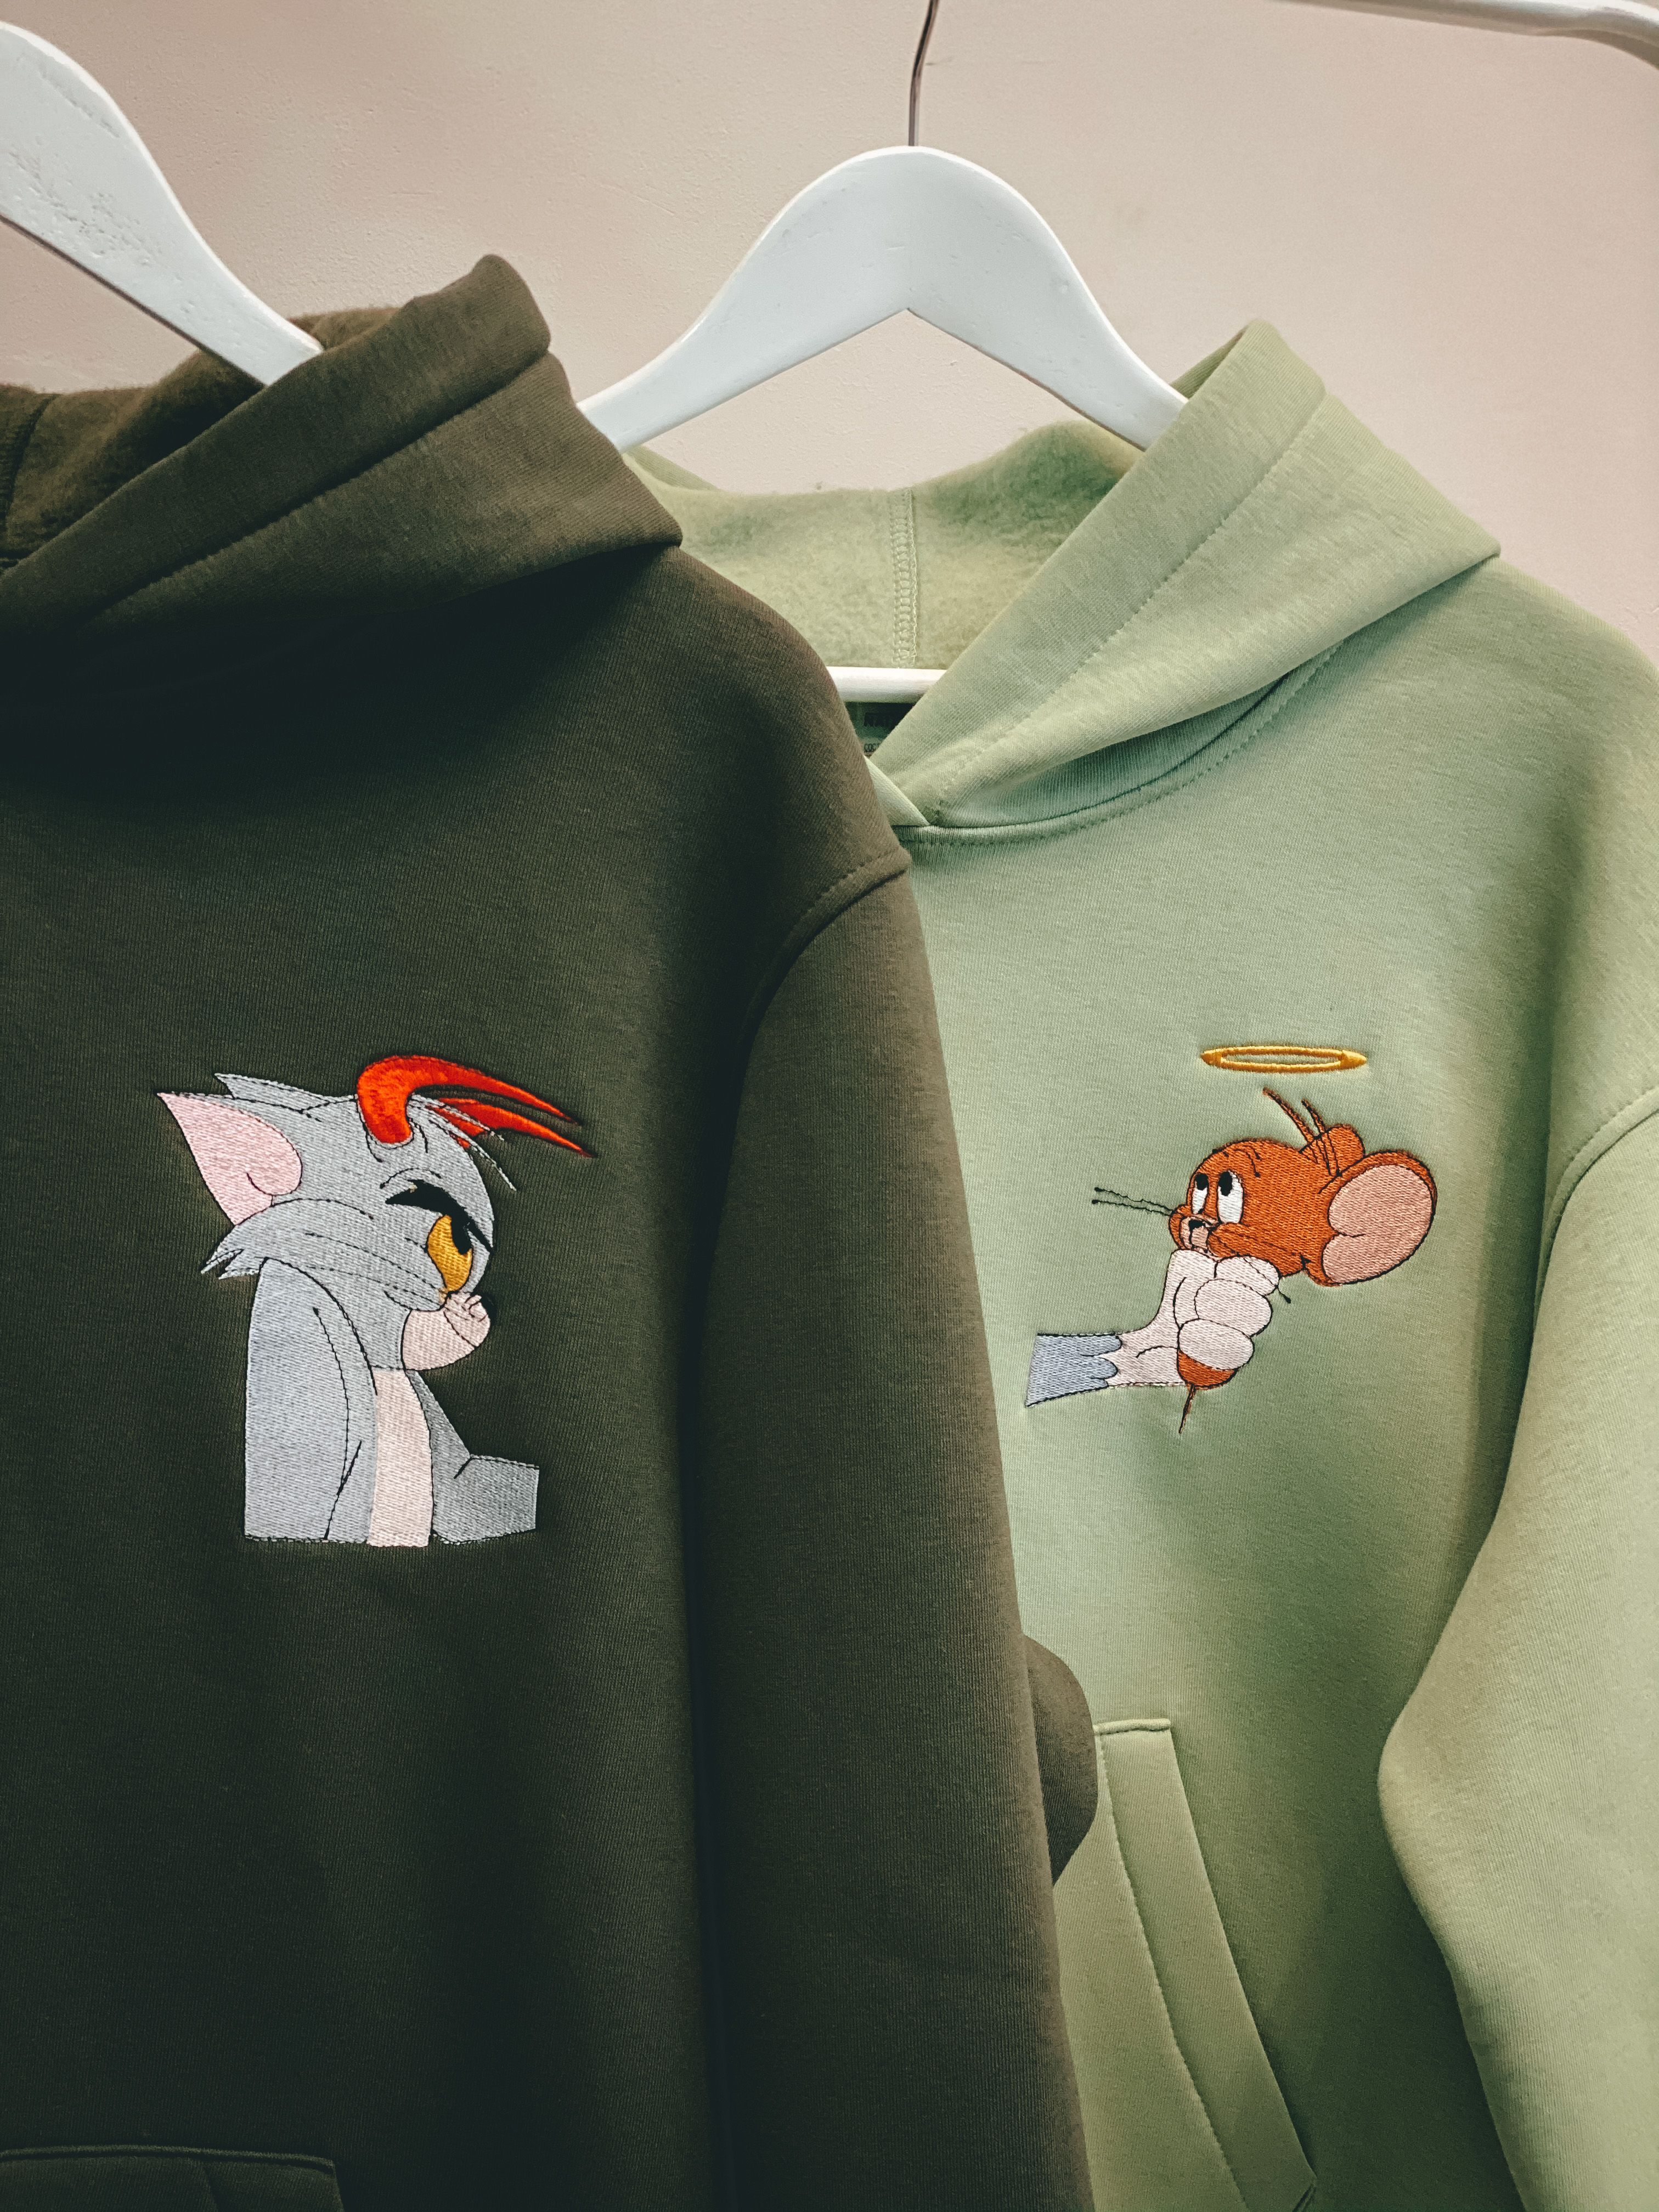 Couple Embroidered Cat And Mouse Hoodies Unisex Cartoon Animals Sweatshirts Tshirts Gift For Her And Him In 2021 Couples Hoodies Hoodies Matching Couple Outfits [ 4032 x 3024 Pixel ]